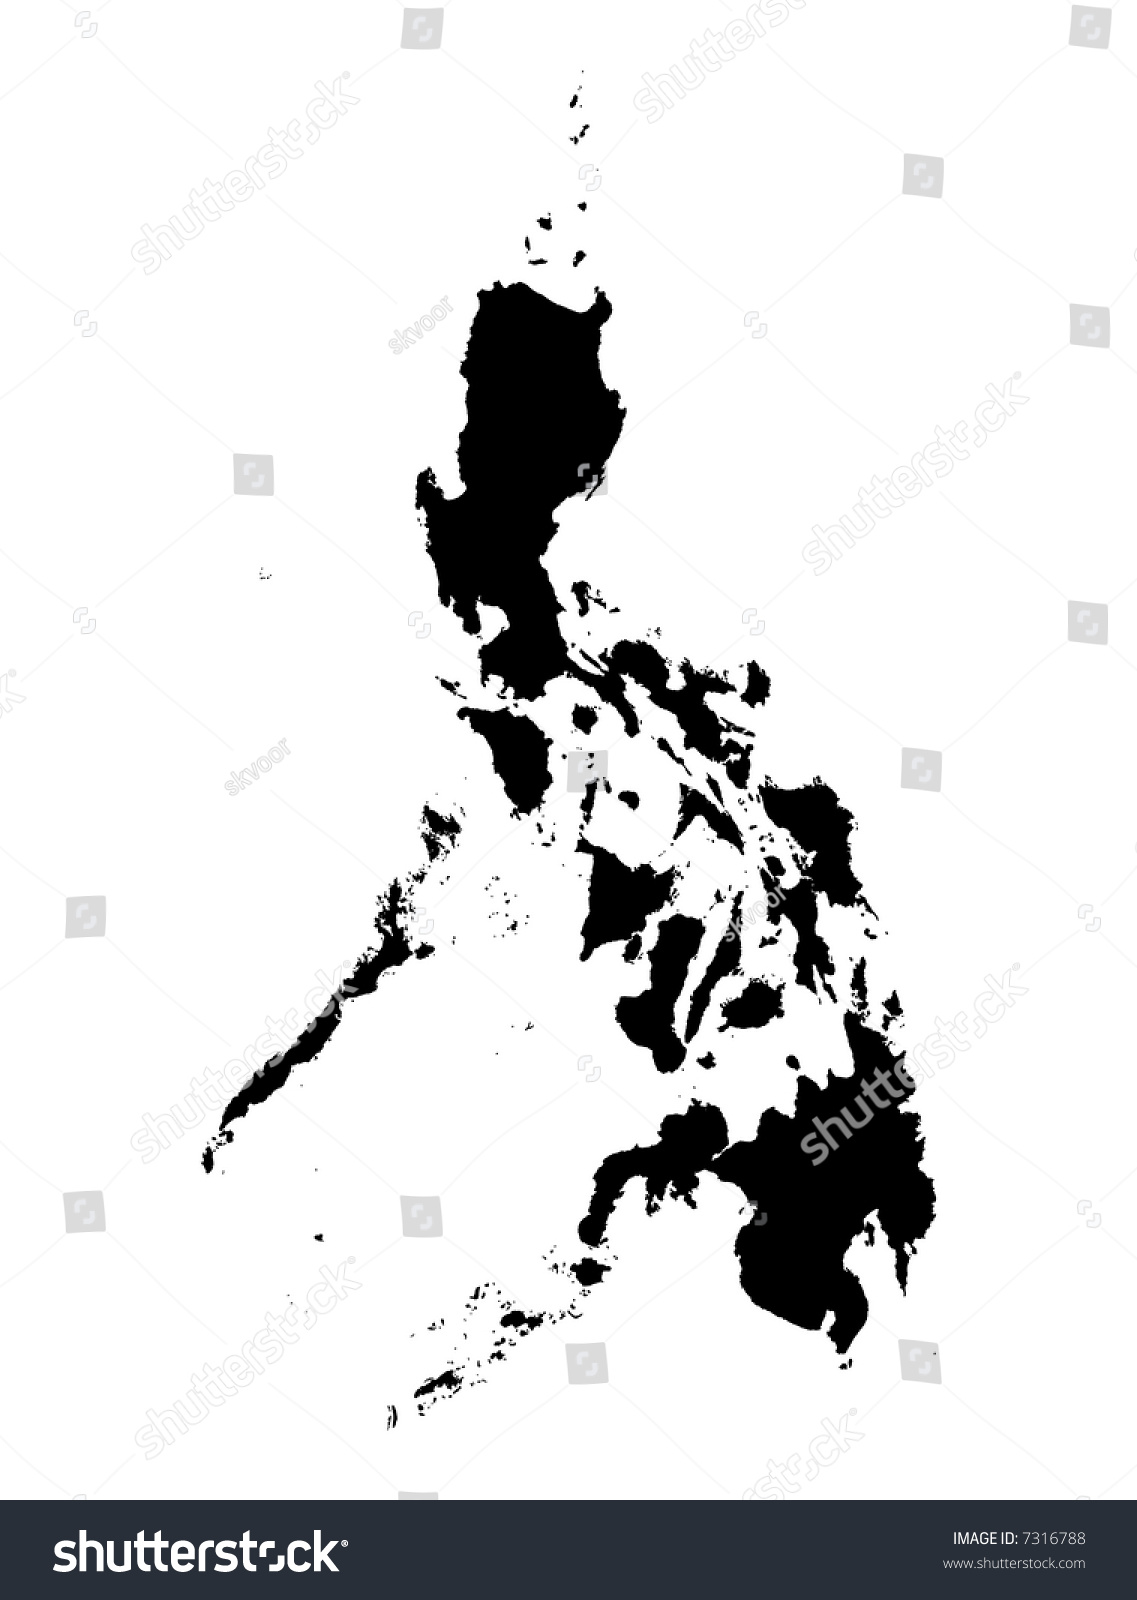 philippine map clipart black and white - photo #6